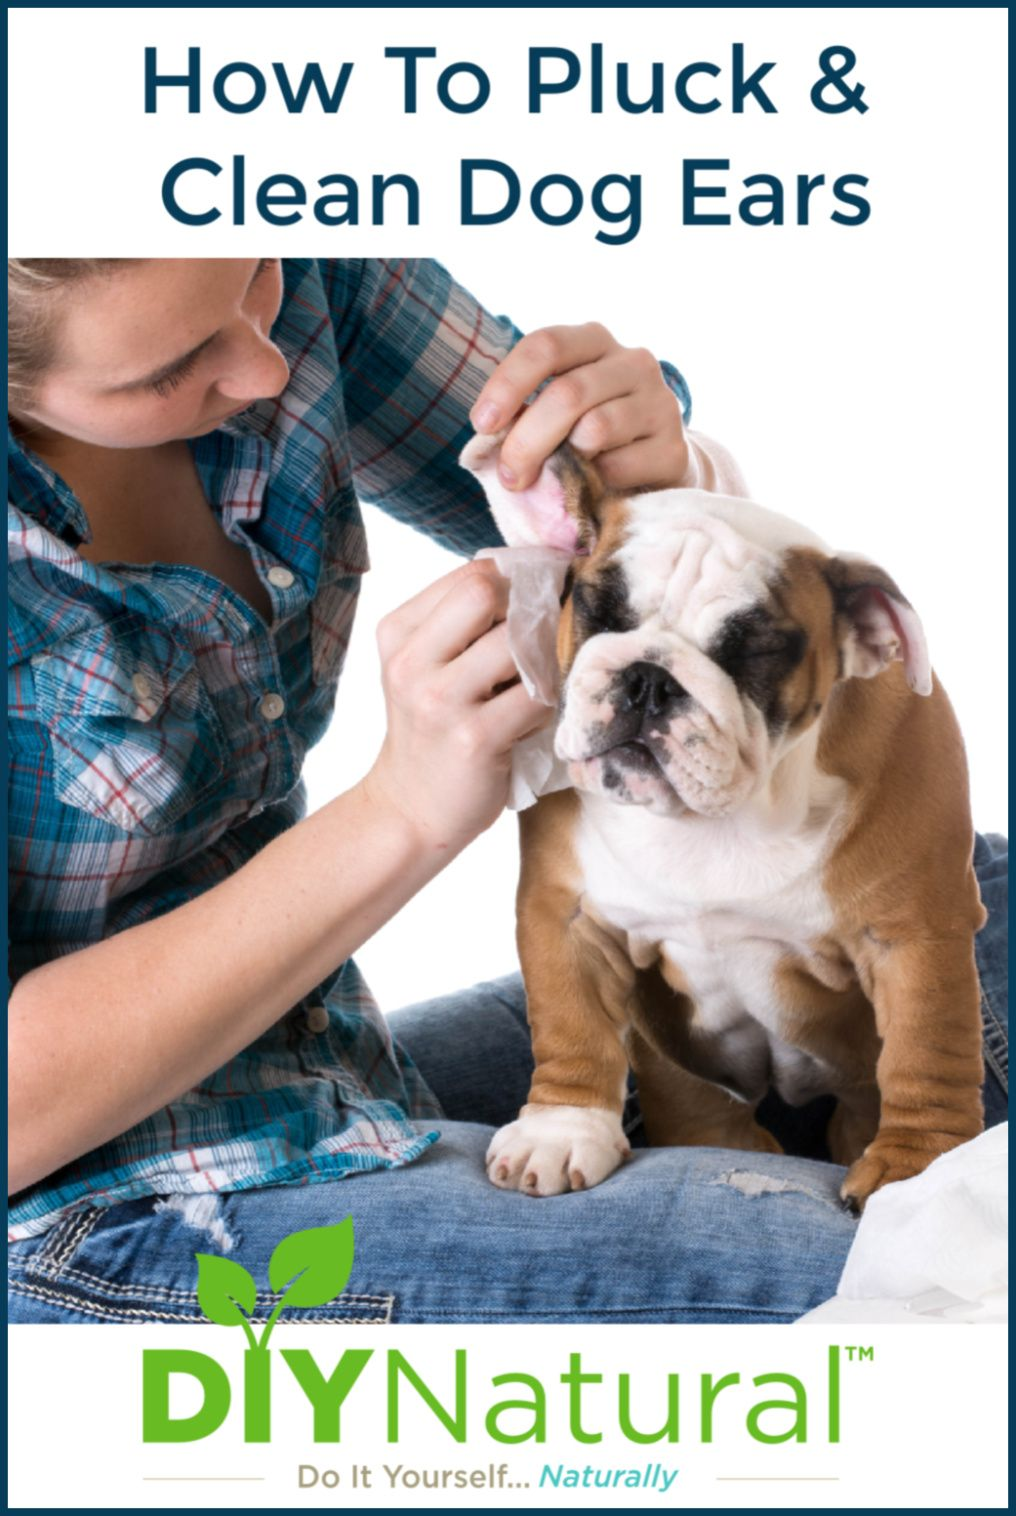 How to clean dog ears removing the hair and cleaning them